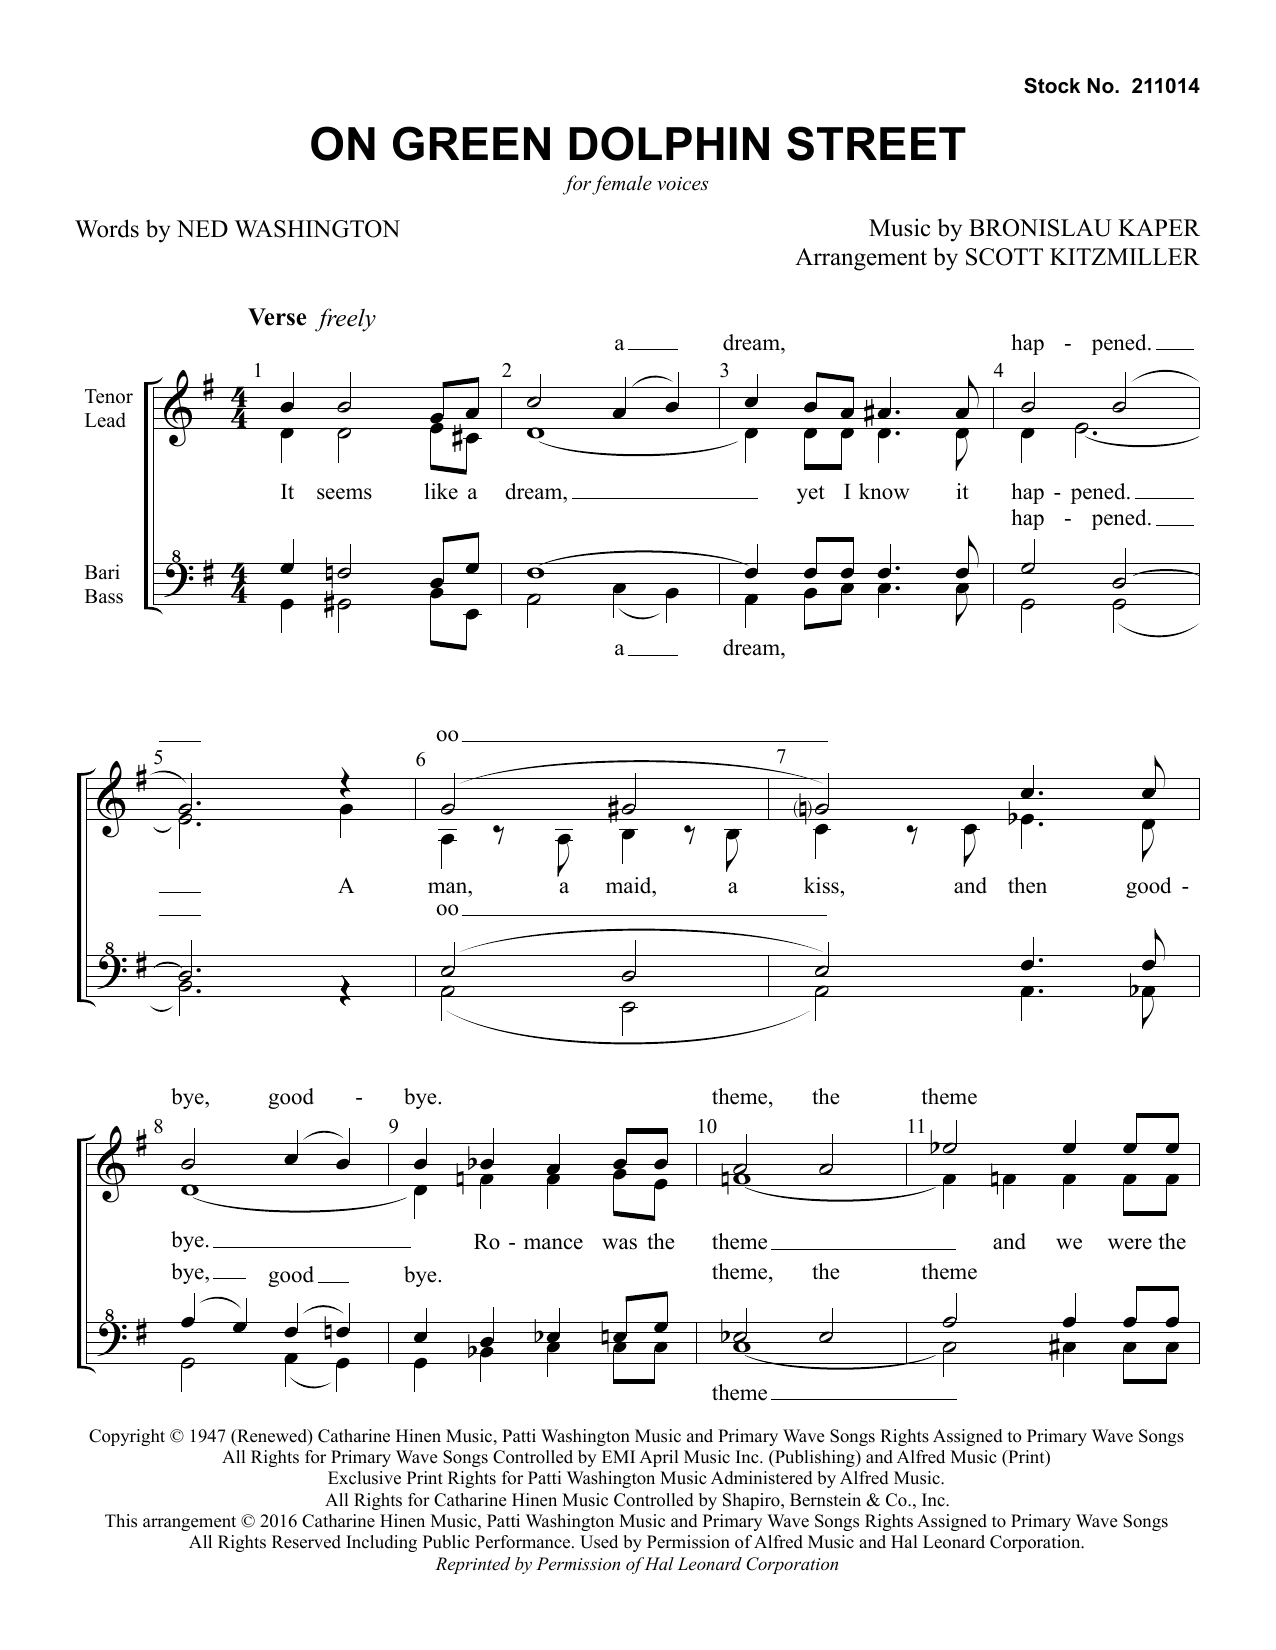 Jimmy Dorsey Orchestra On Green Dolphin Street (arr. Scott Kitzmiller) sheet music preview music notes and score for TTBB Choir including 8 page(s)